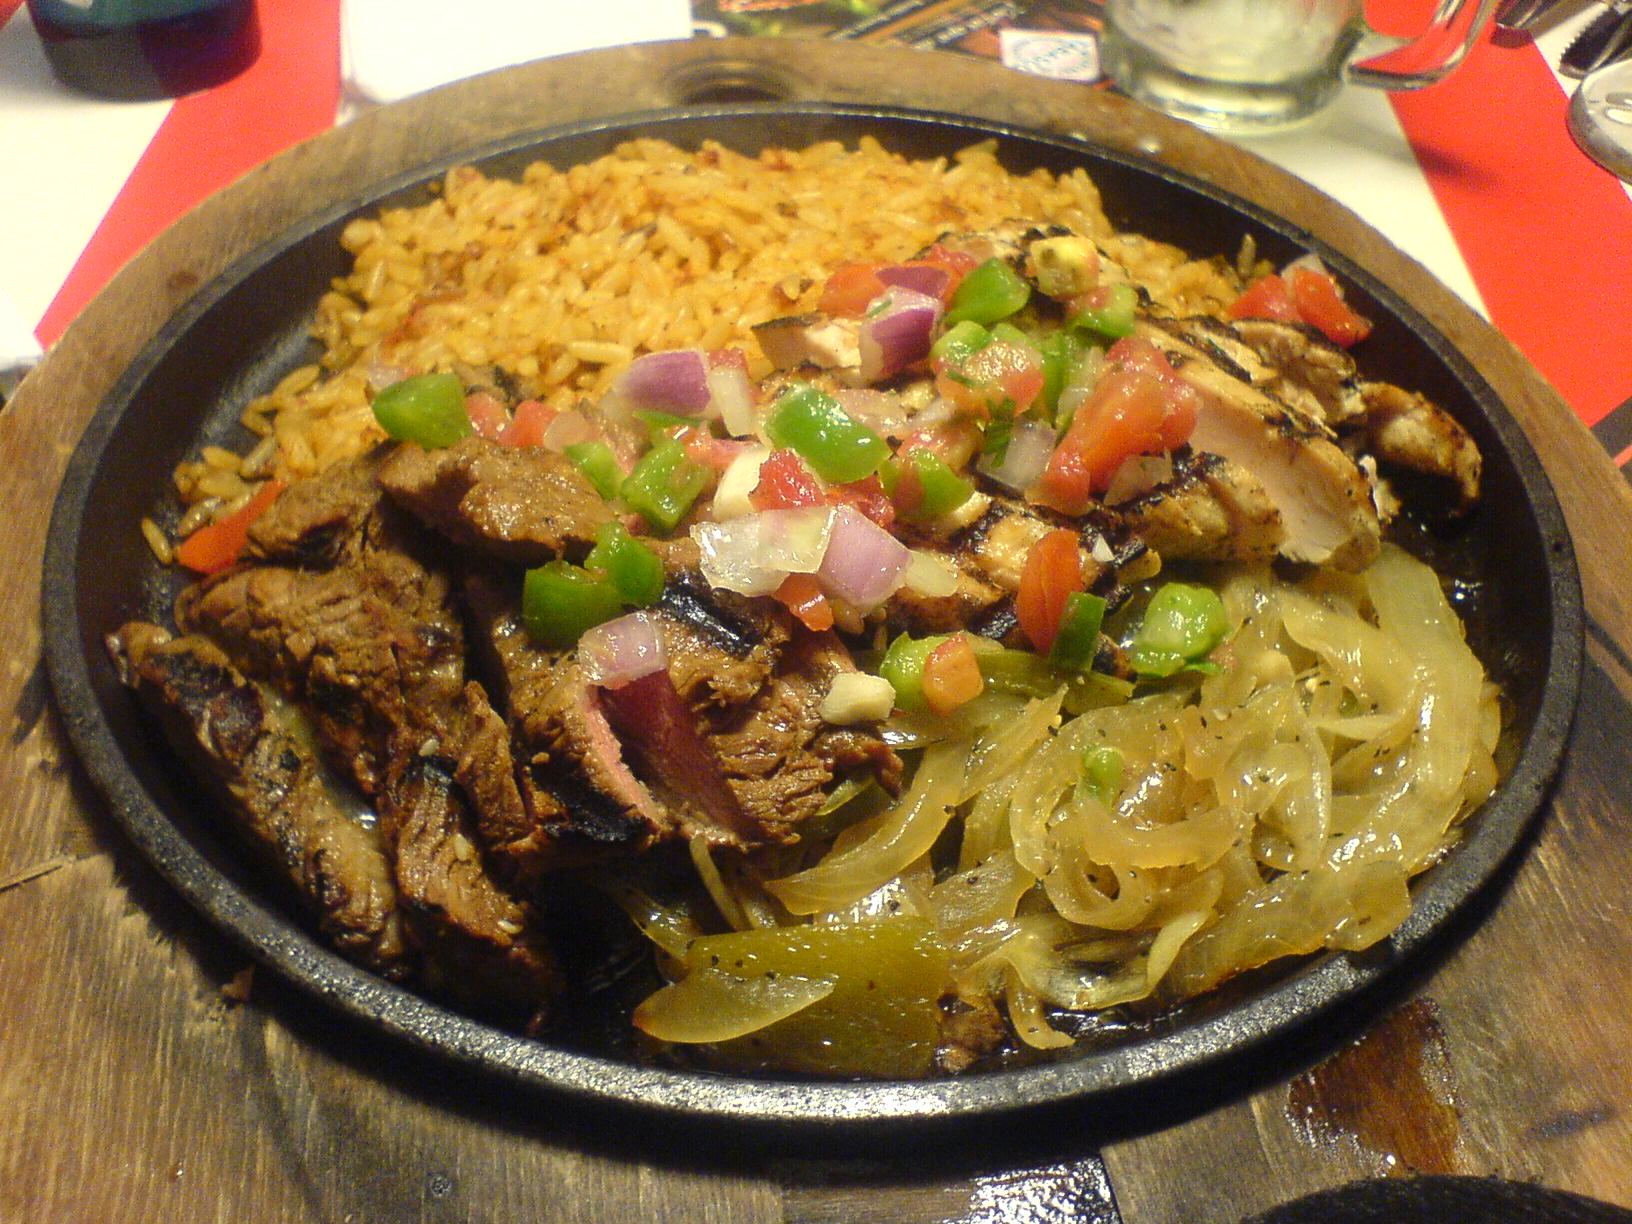 ... elisart 324248450--Beef and chicken fajitas.jpg - Wikimedia Commons